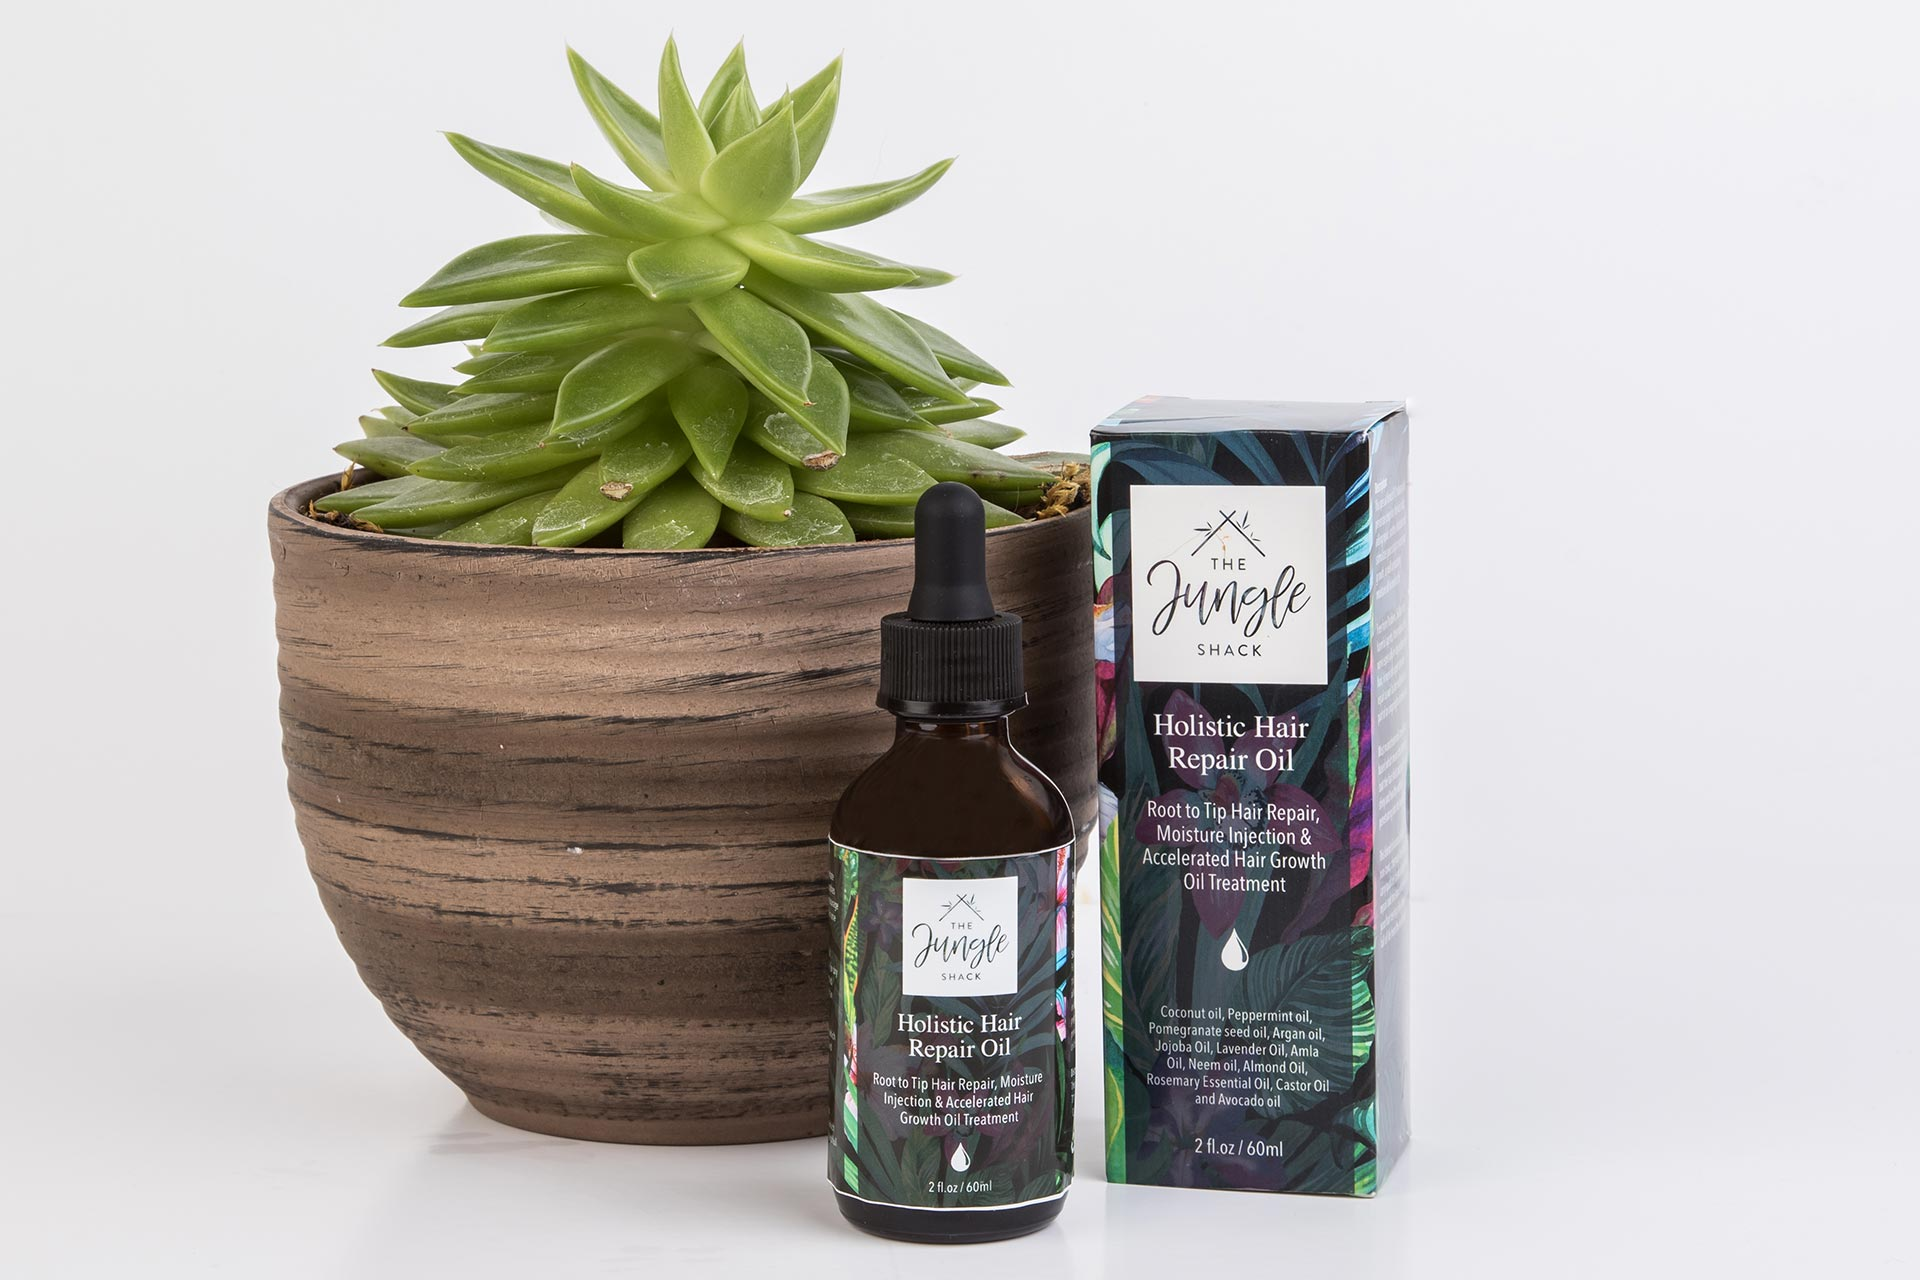 Jungle Shack hair oil product packaging design